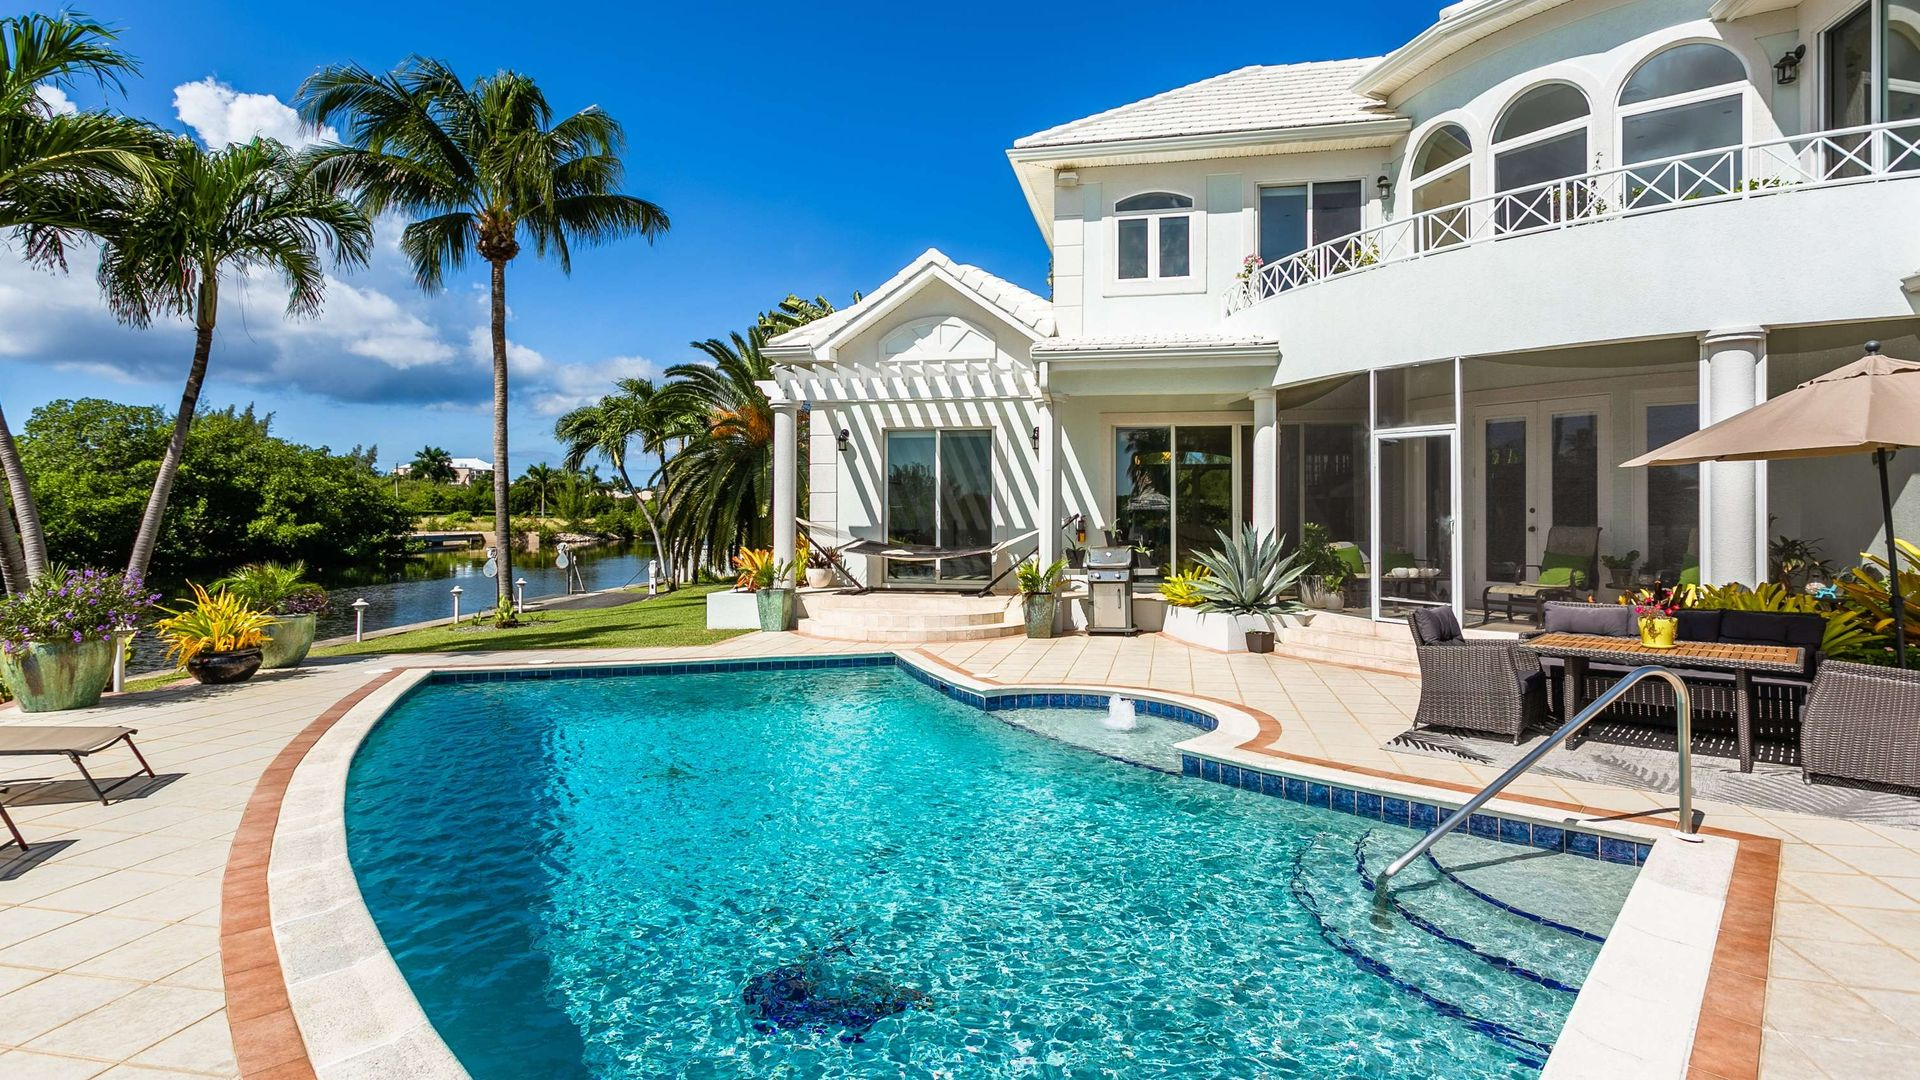 Today's Real Estate Market in the Cayman Islands